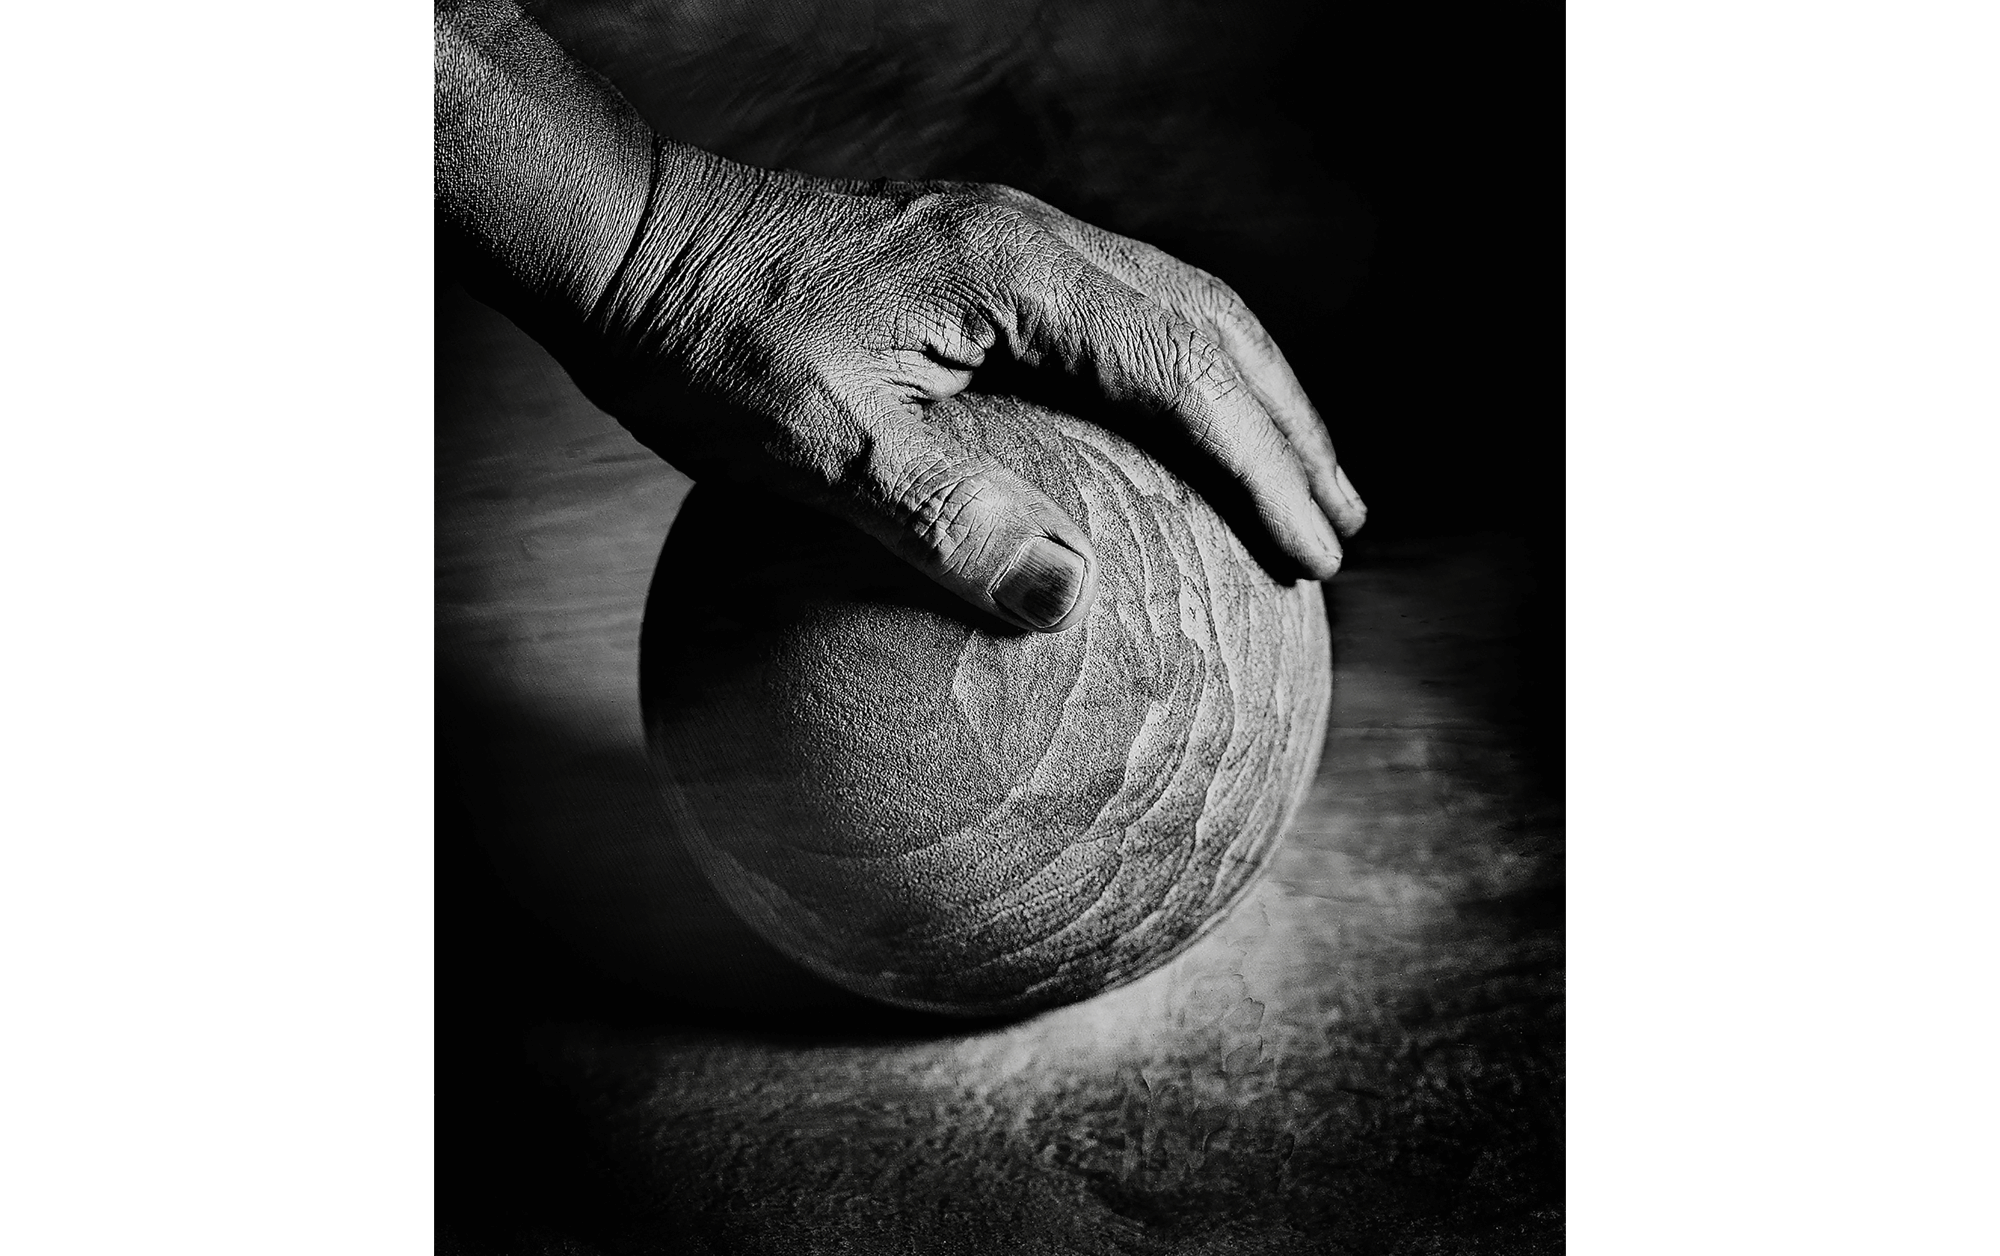 """Self portrait my hand"", 2002 © Shin Sugino"